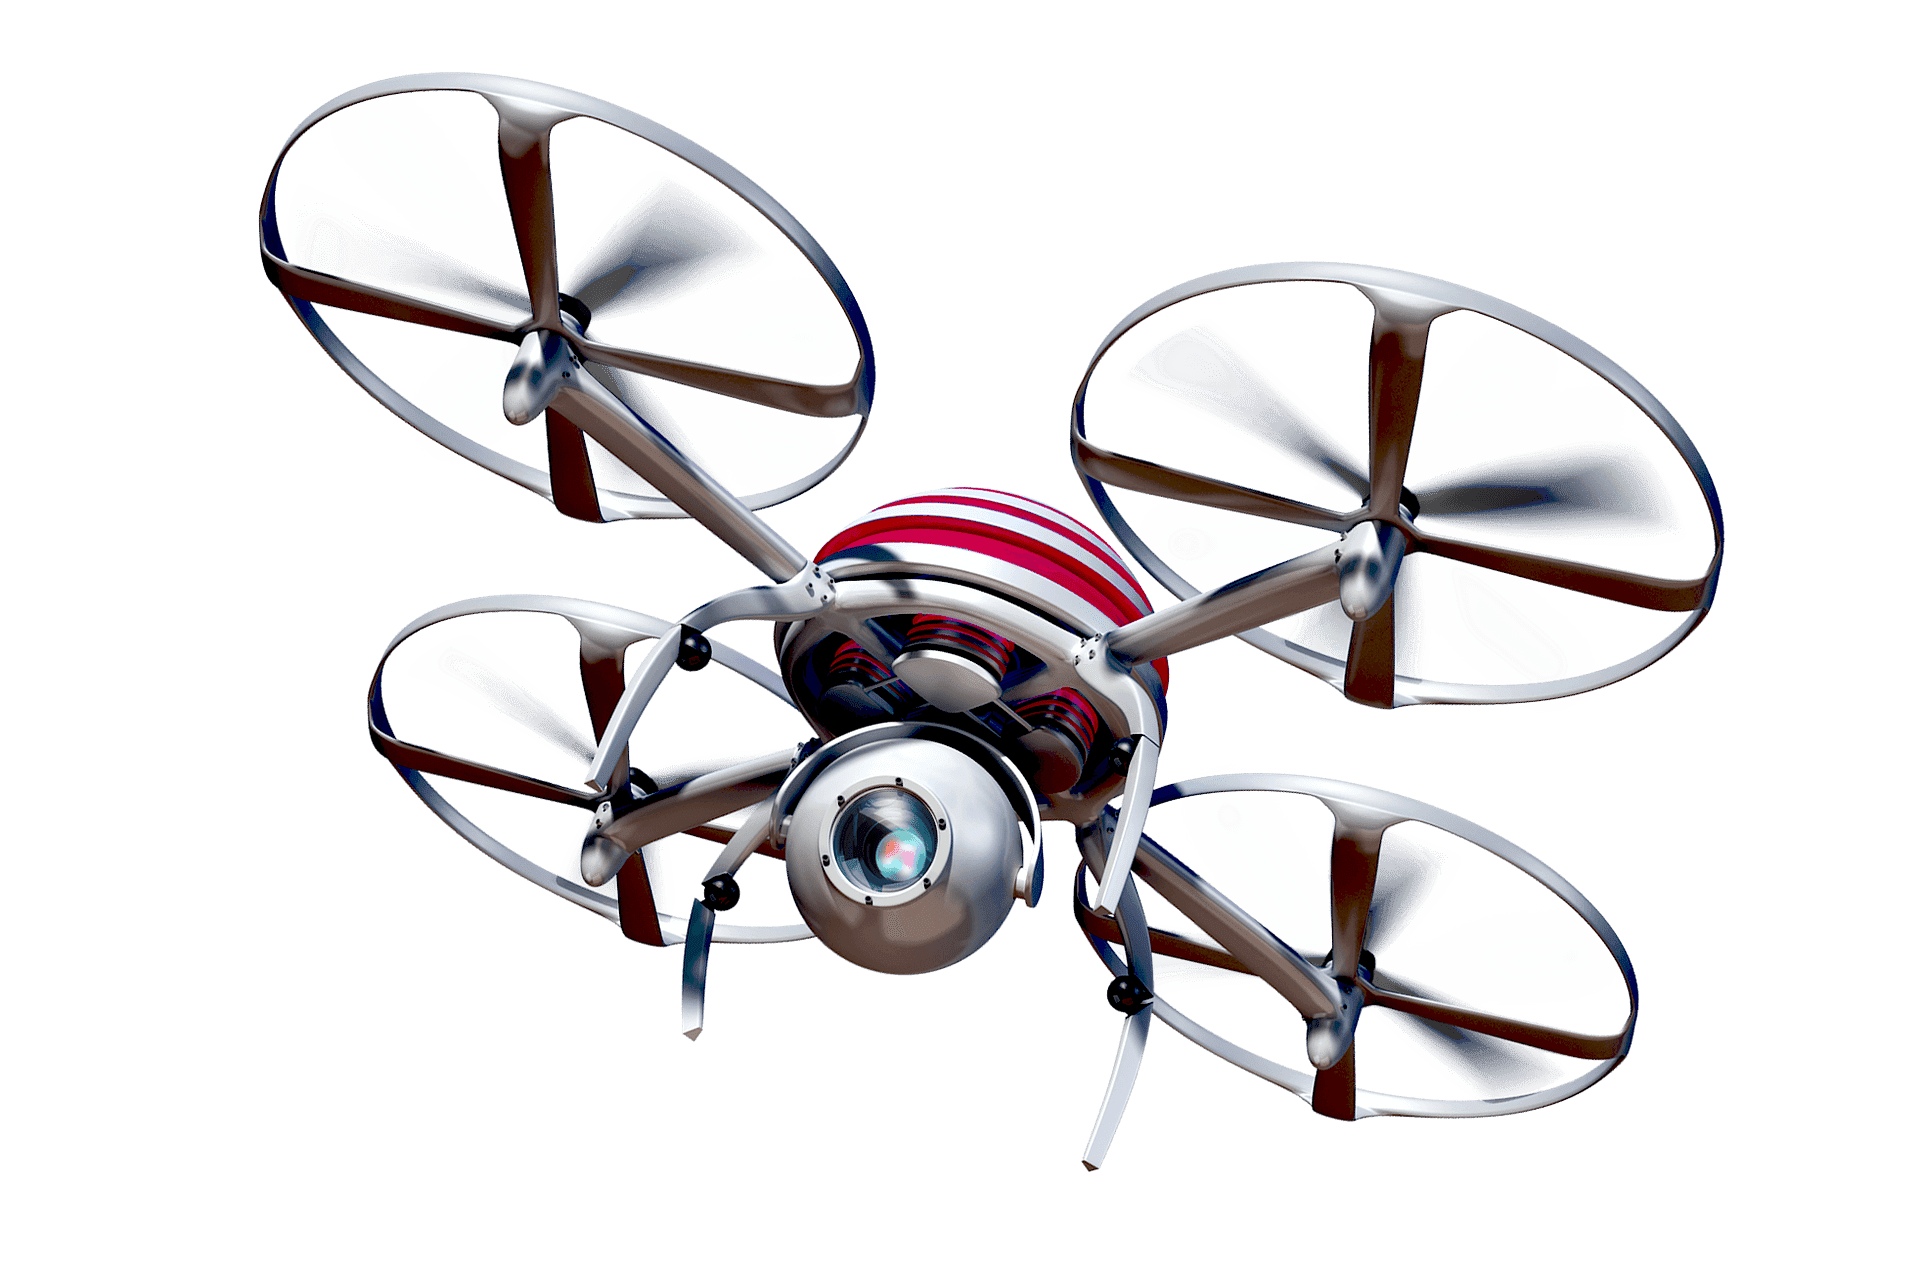 content/en-gb/images/repository/isc/2020/a-spy-drone-with-large-camera-lens.png